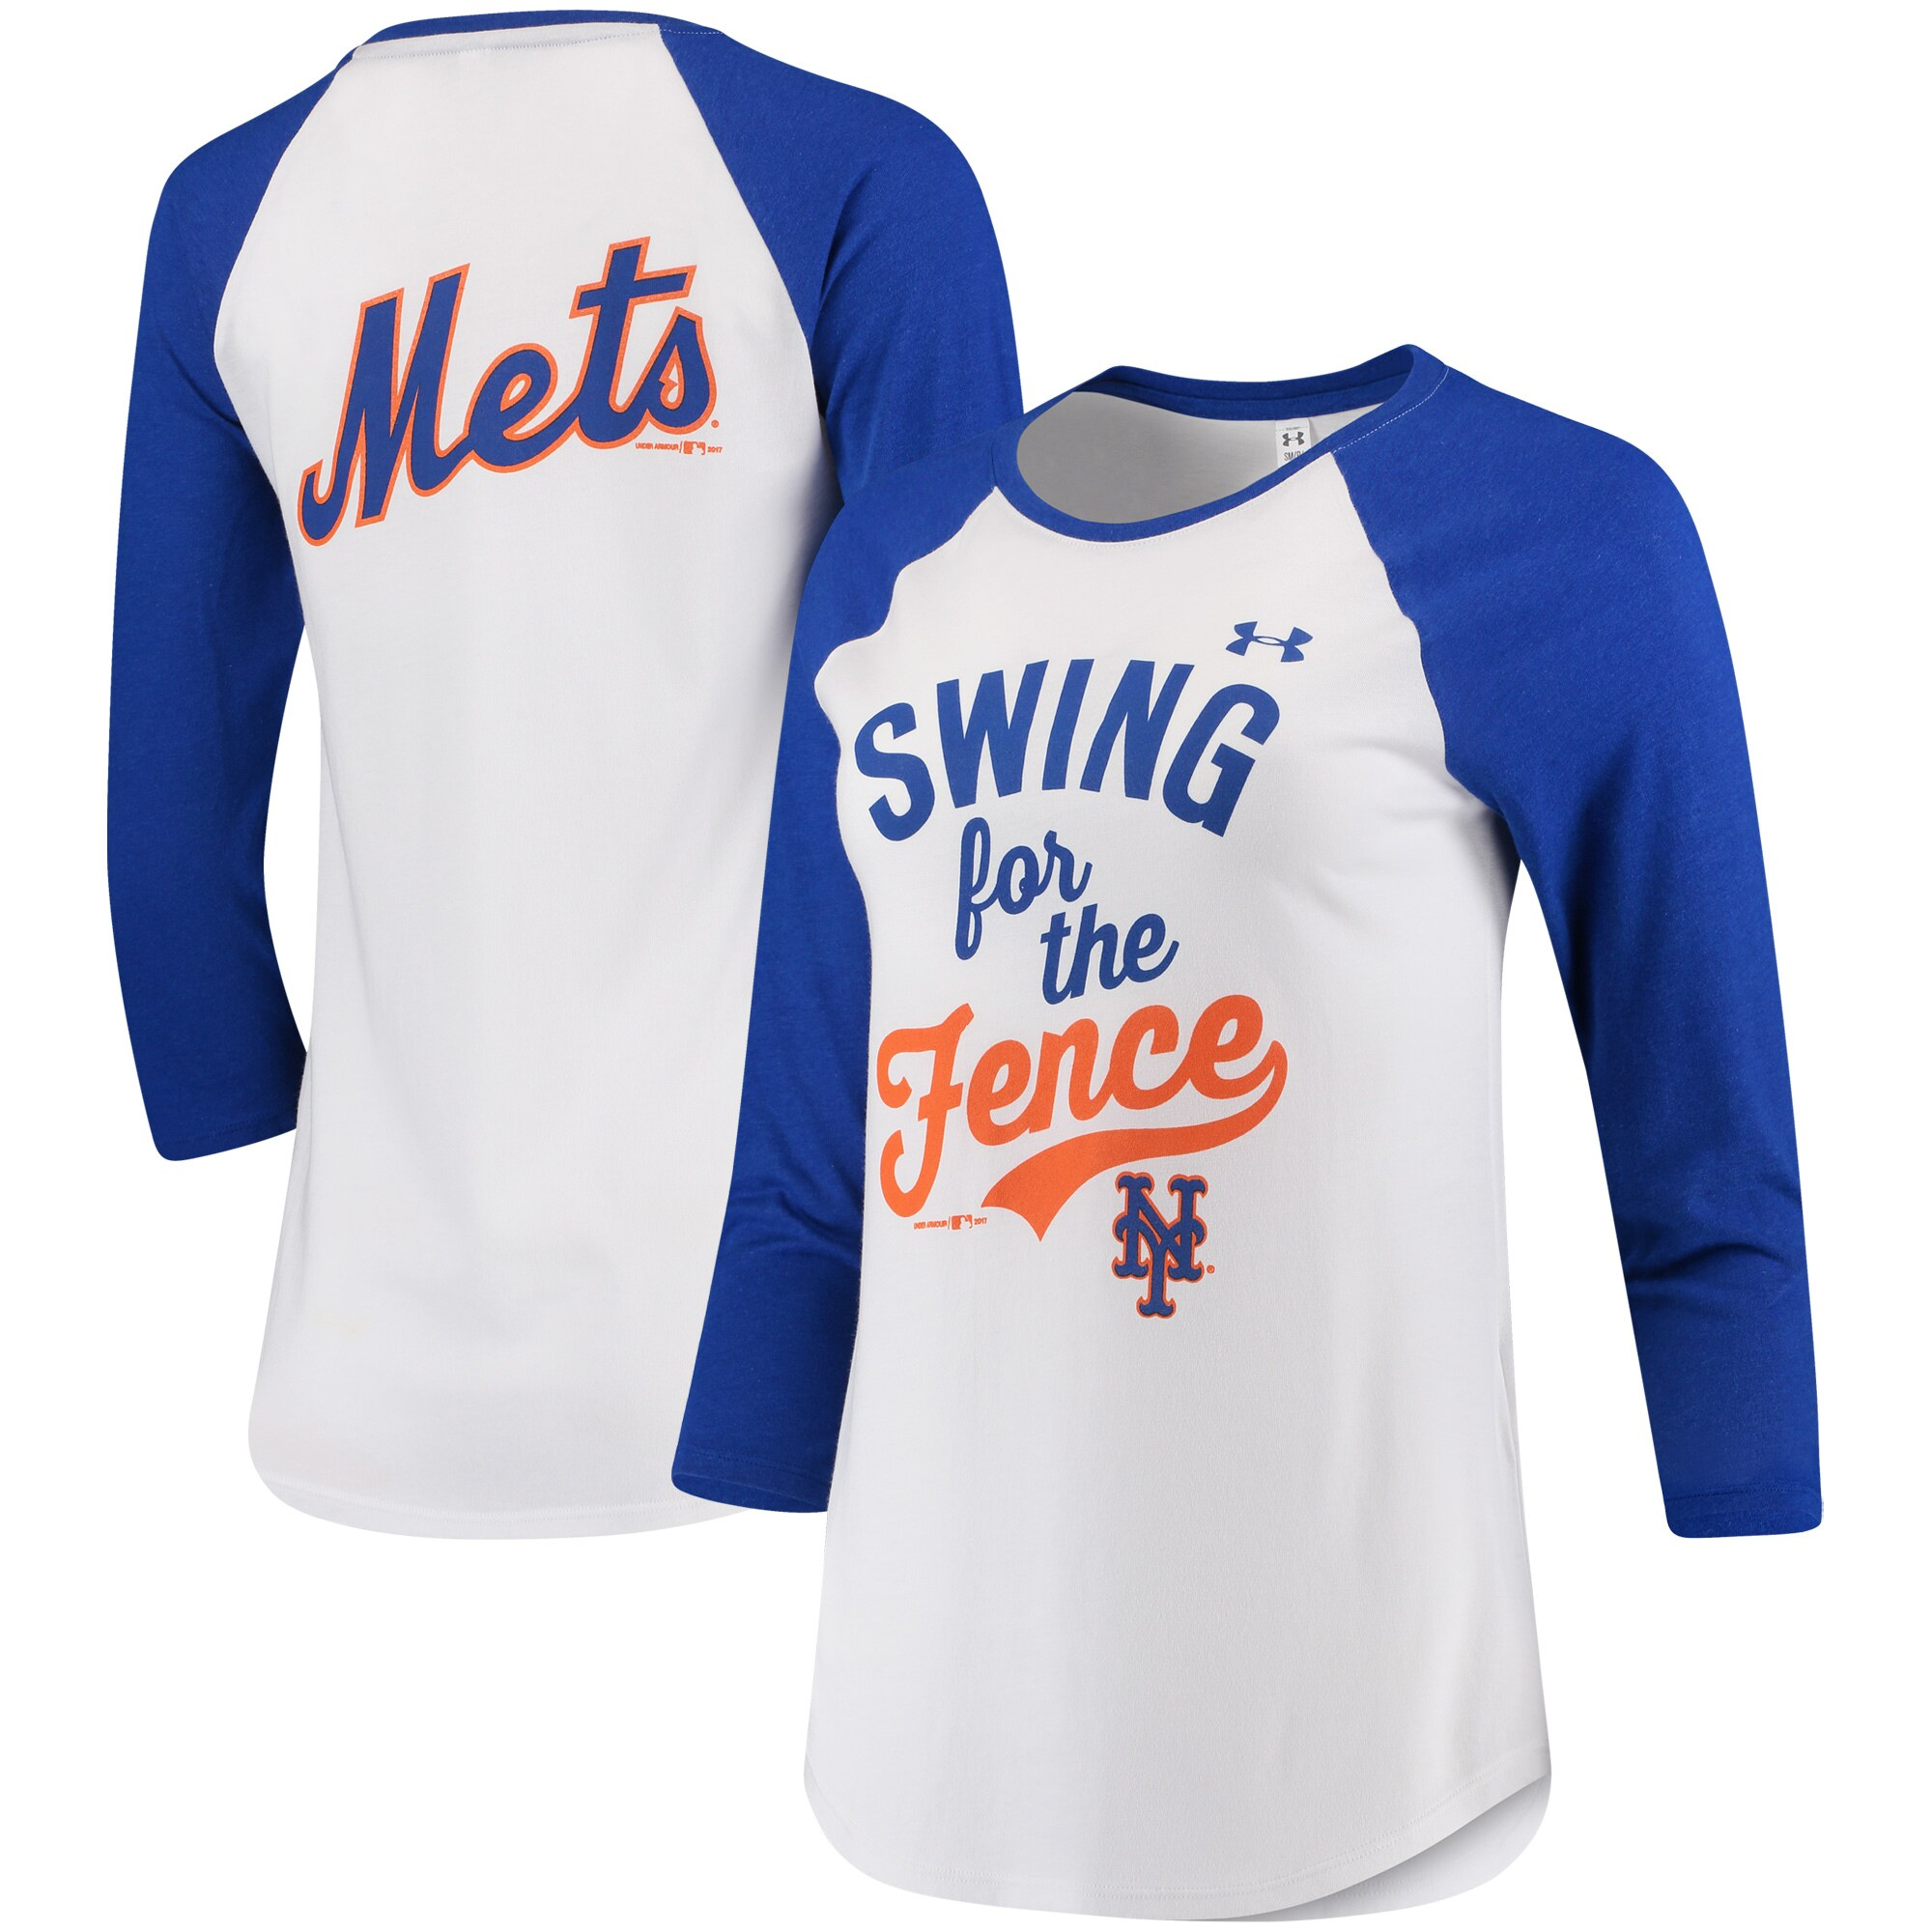 New York Mets Under Armour Women's Baseball 3/4-Sleeve T-Shirt - White